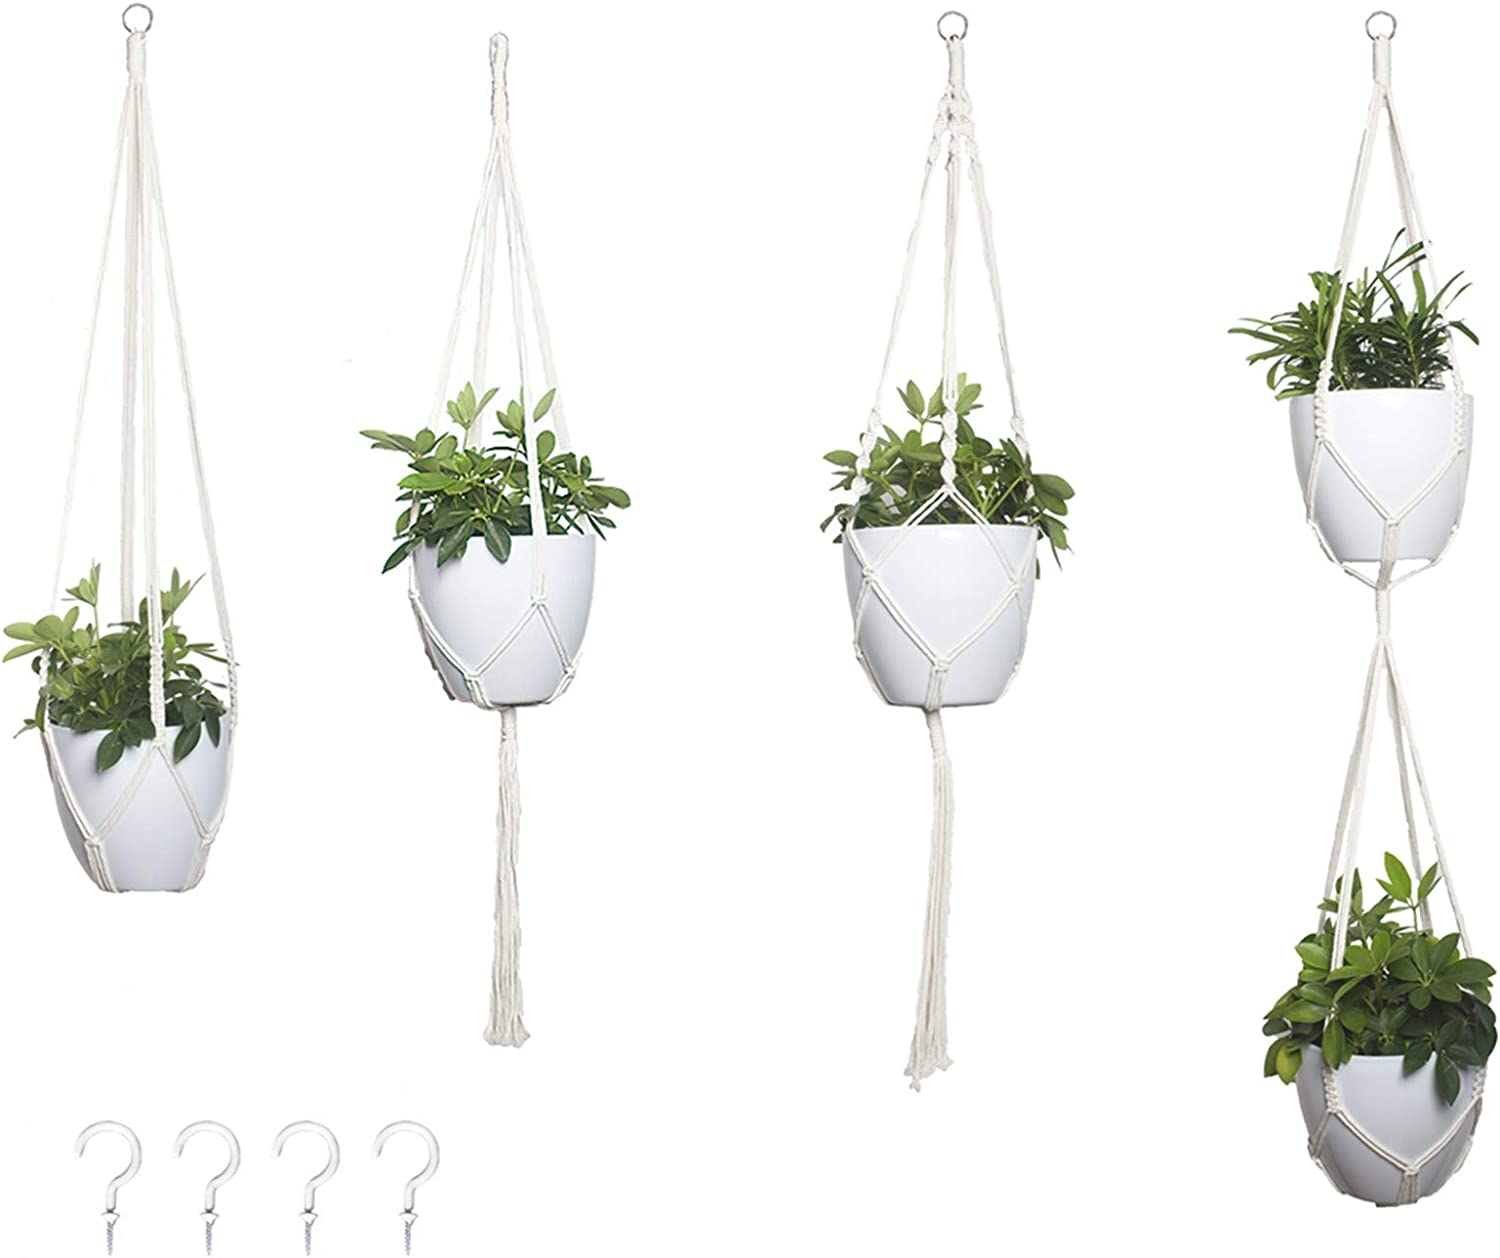 Oligate Macrame Plant Hangers 4pcs B Indoor Planter famous Wall Our shop OFFers the best service Hanging